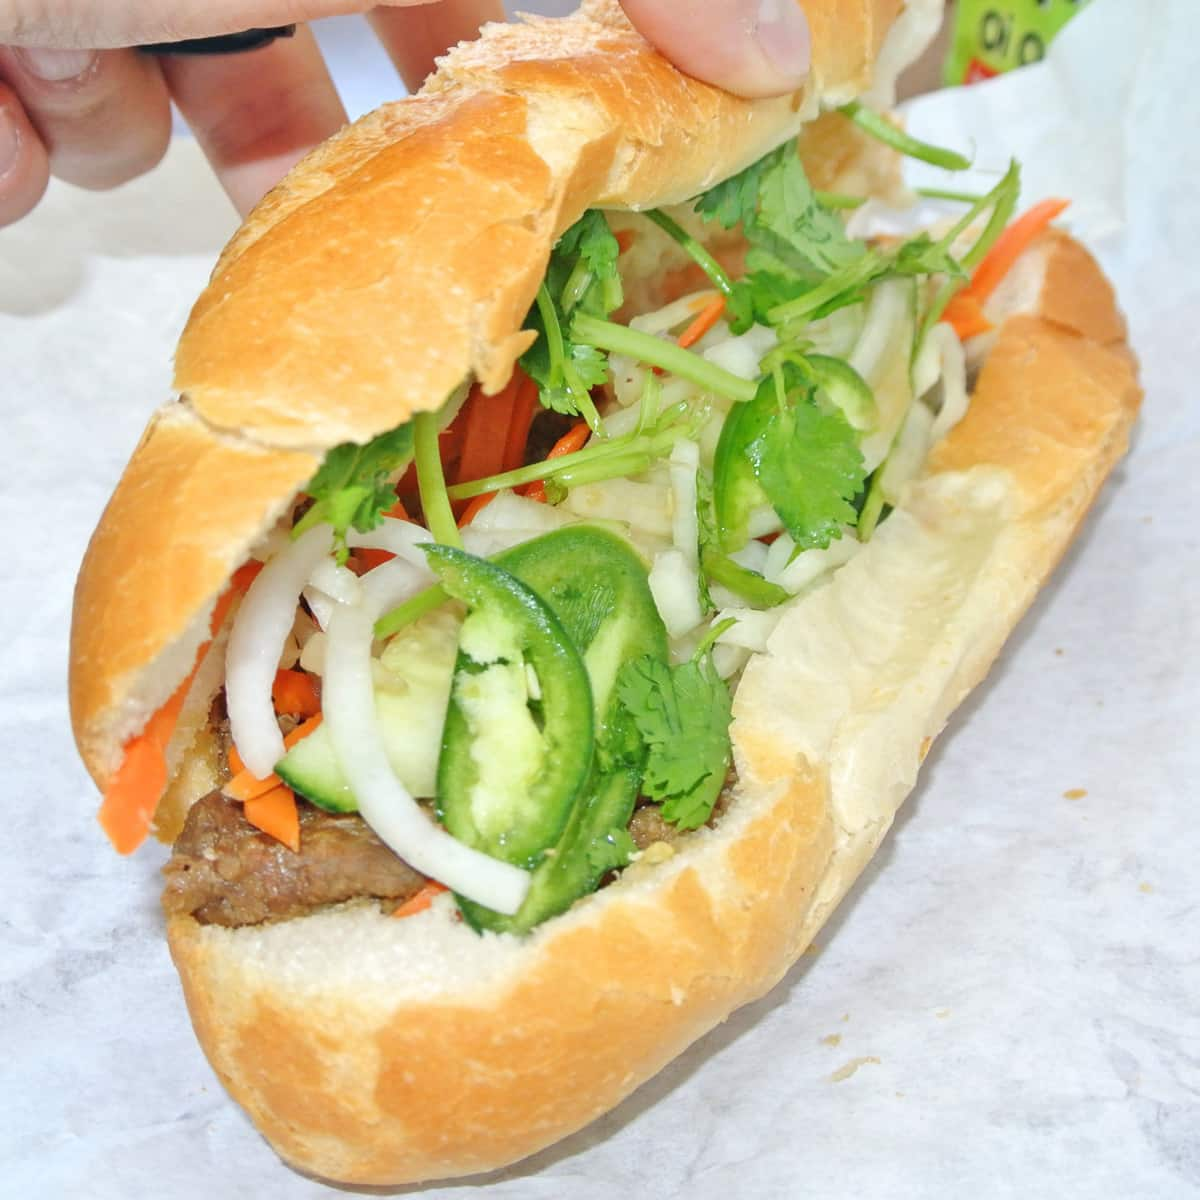 A Super-Legit, Dirt-Cheap, Hole-in-the-Wall Banh Mi Shop in Sunnyvale